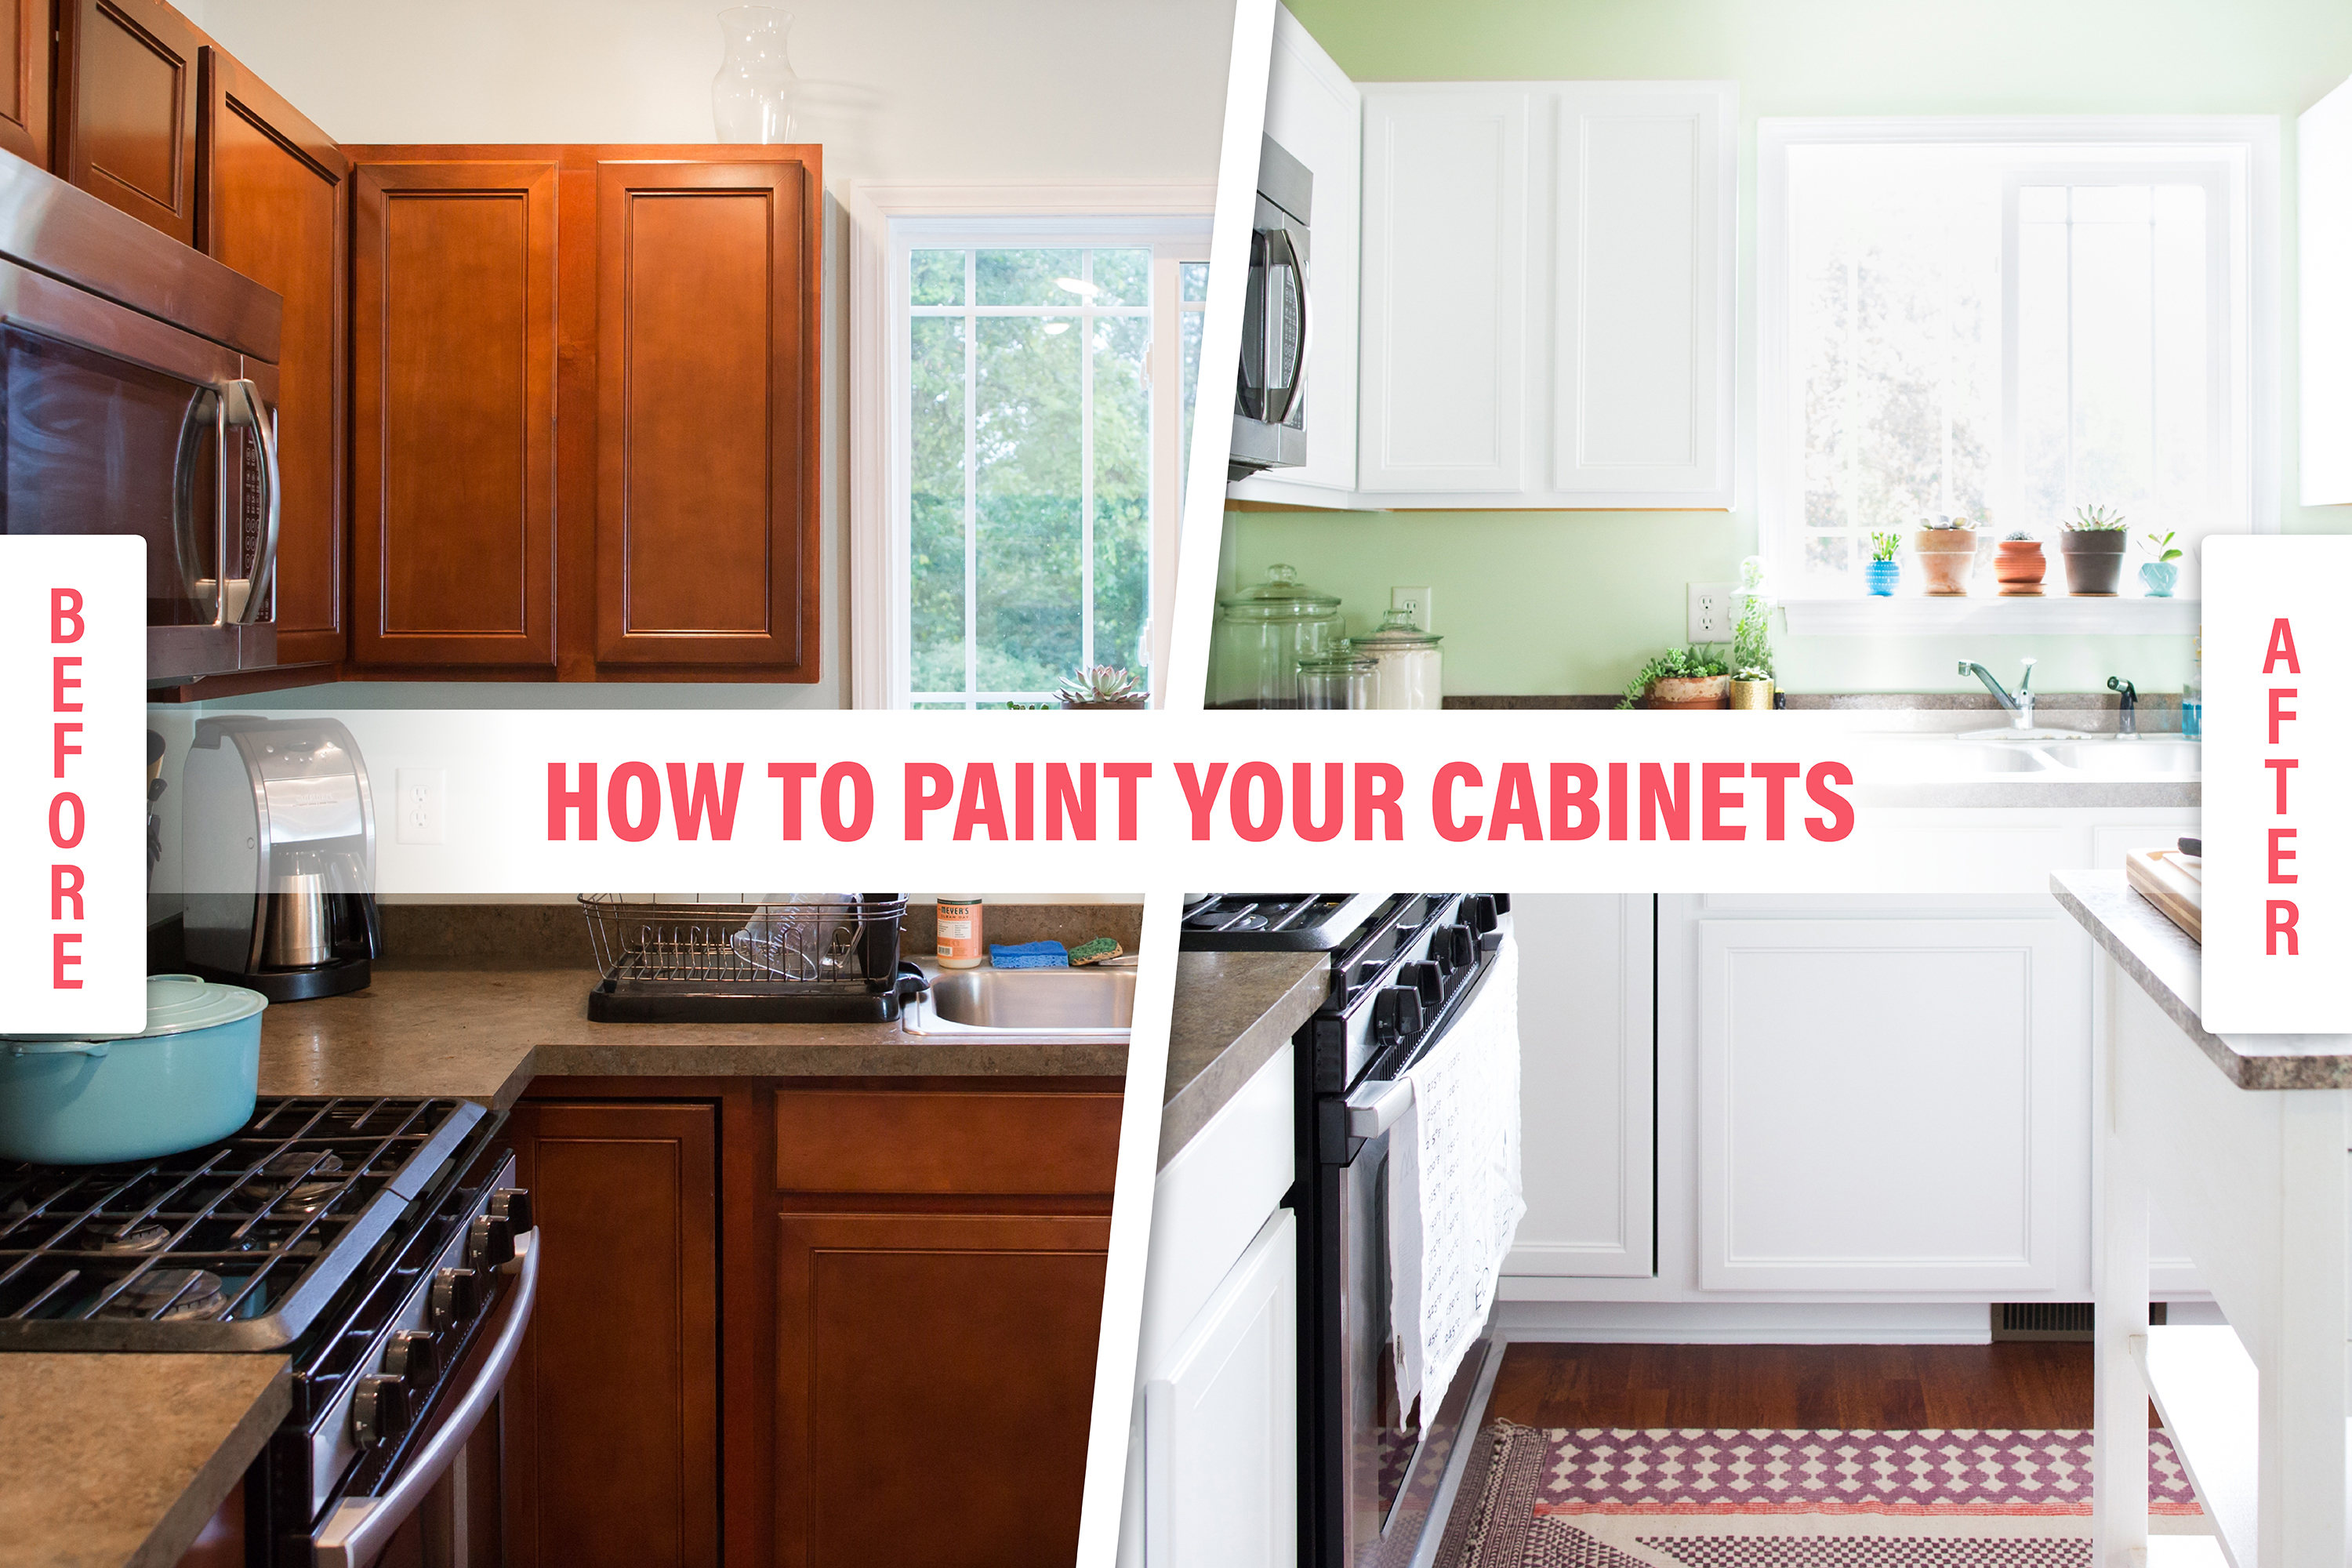 What Kind Of Paint To Use On Wood Kitchen Cabinets How To Paint Wood Kitchen Cabinets with White Paint | Kitchn